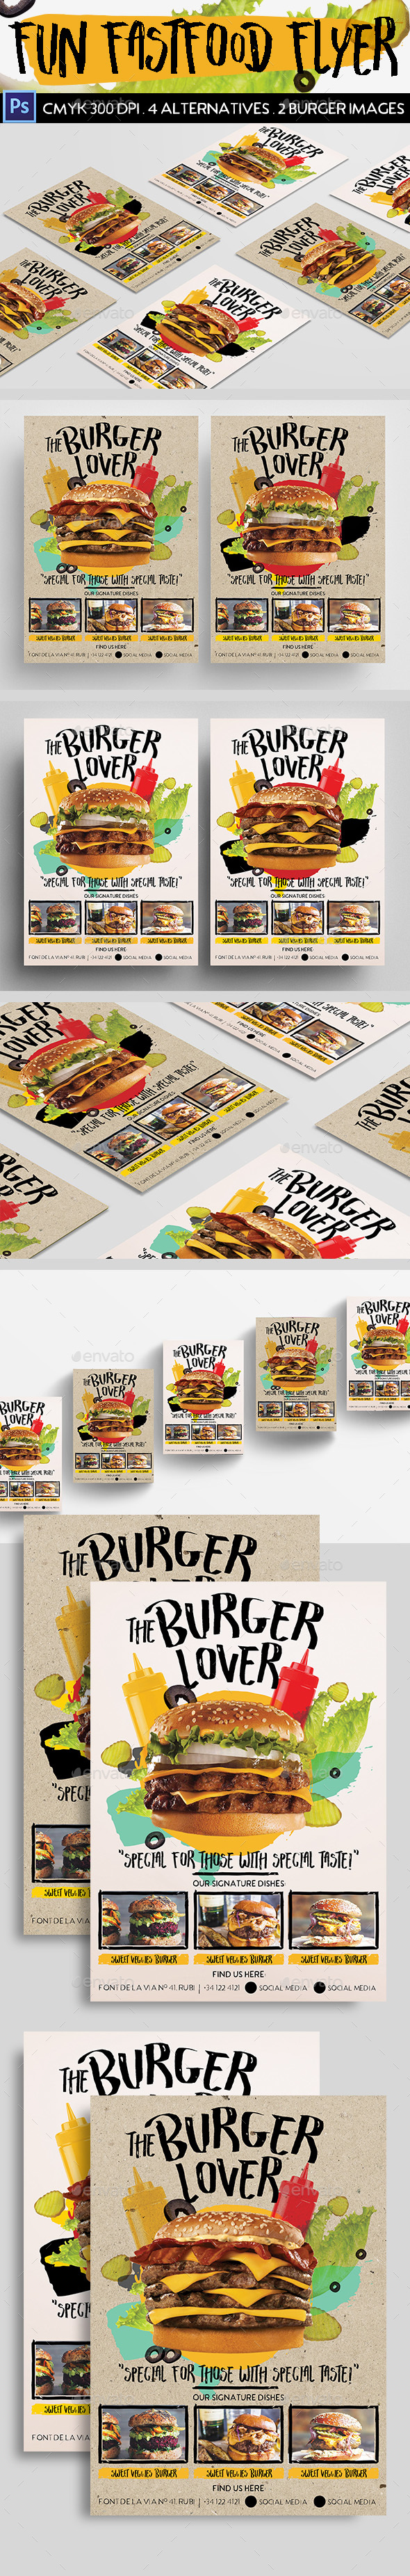 Fun Fast Food Flyer - Restaurant Flyers